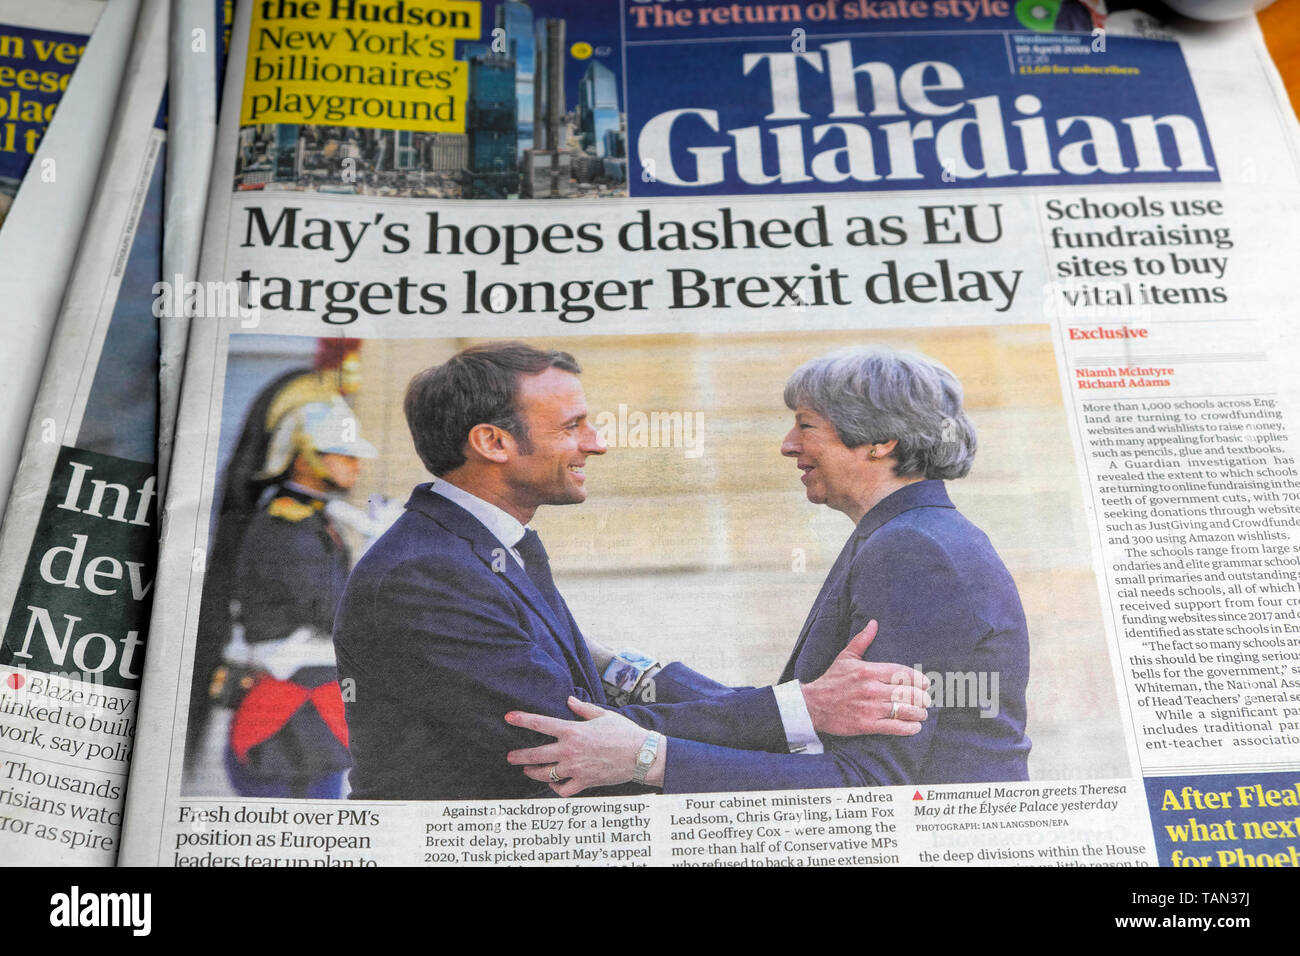 'May's hopes dashed as EU targets longer Brexit delay' in The Guardian front page newspaper headline as French President Emmanuel Macron greets Tory PM Theresa May in Paris France Europe EU on 9 April 2019 - Stock Image